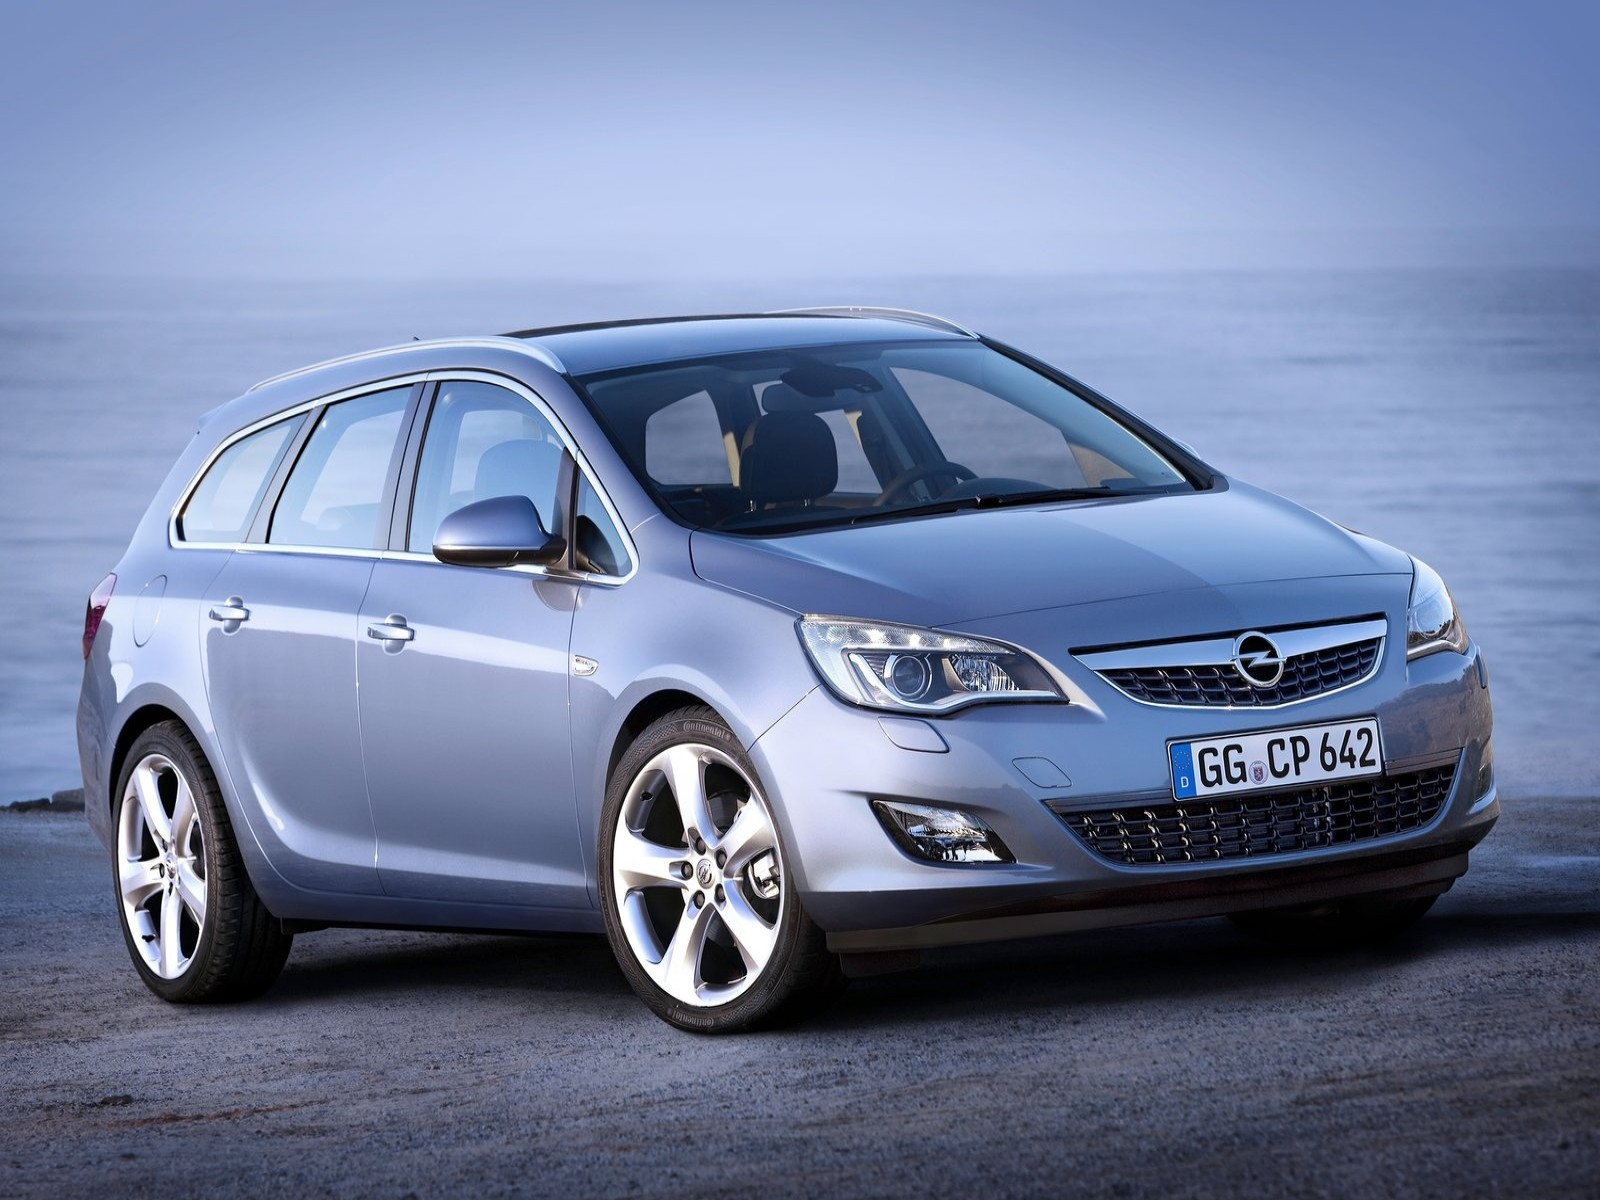 Car Pictures: Opel Astra Sports Tourer 2011